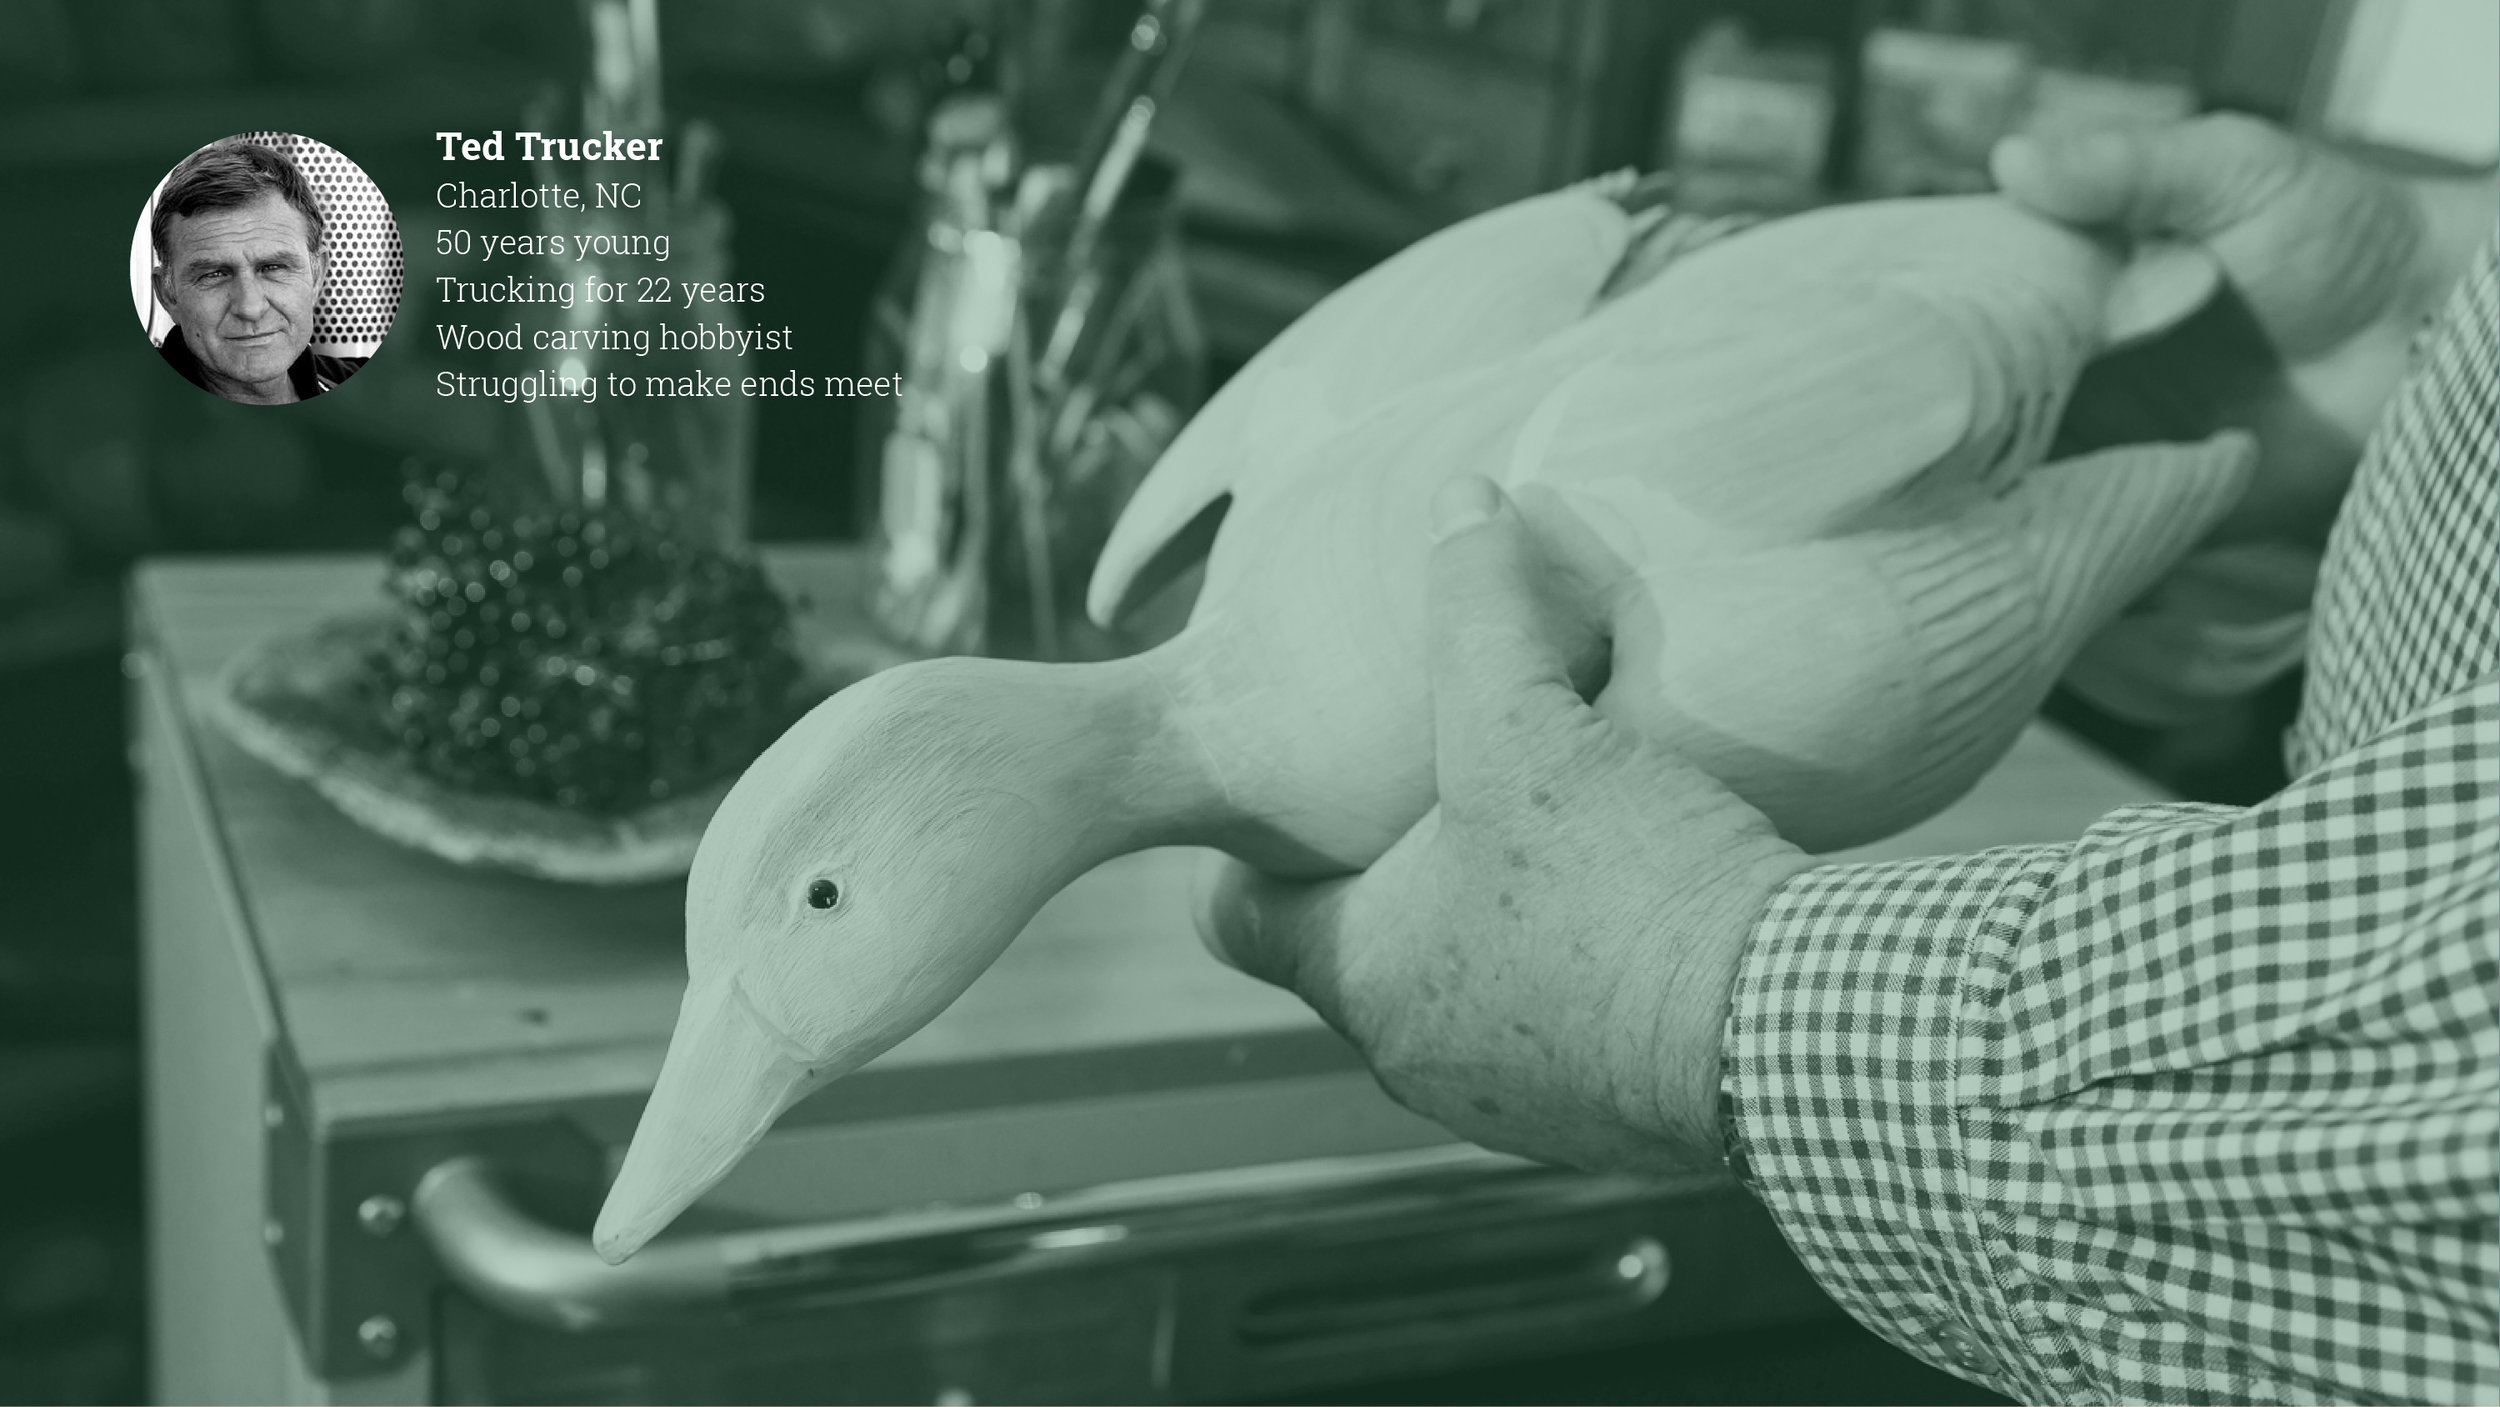 Ted Trucker is a duck decoy carving maestro — when his hands aren't on the steering wheel.